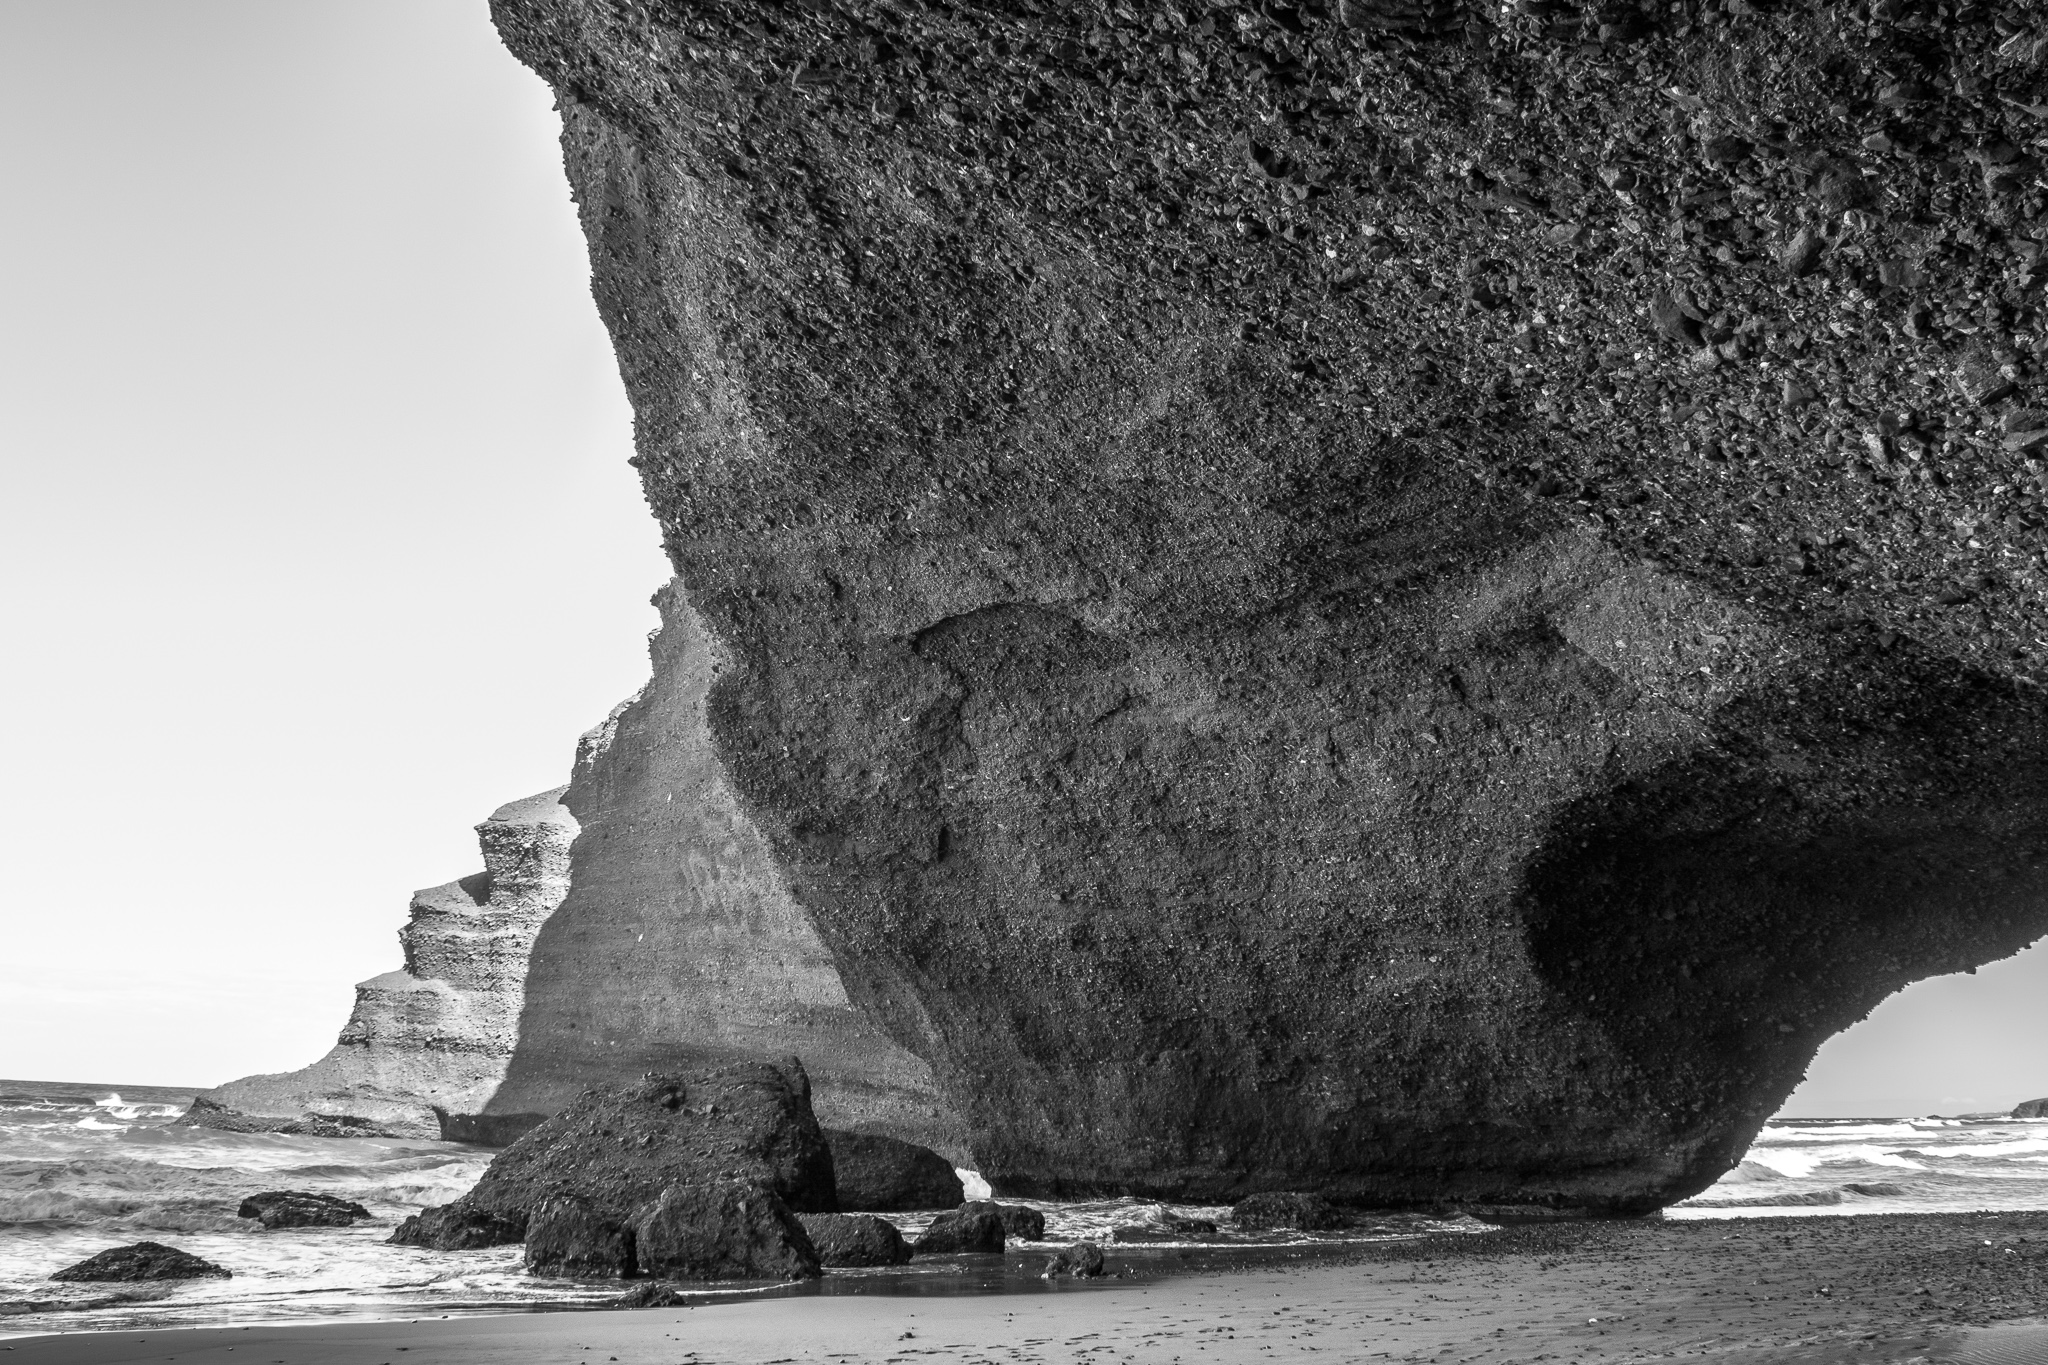 The beach of Legzira is located about 10 km north of the village of Sidi Ifni, the former Spanish colony of Morocco. <br> Its monumental natural bridges, red stone arches and elephant's foot, have been carved by marine erosion for centuries. <br> Recently, in 2016, after a cracking collapsed one of the most emblematic arches of the beach.